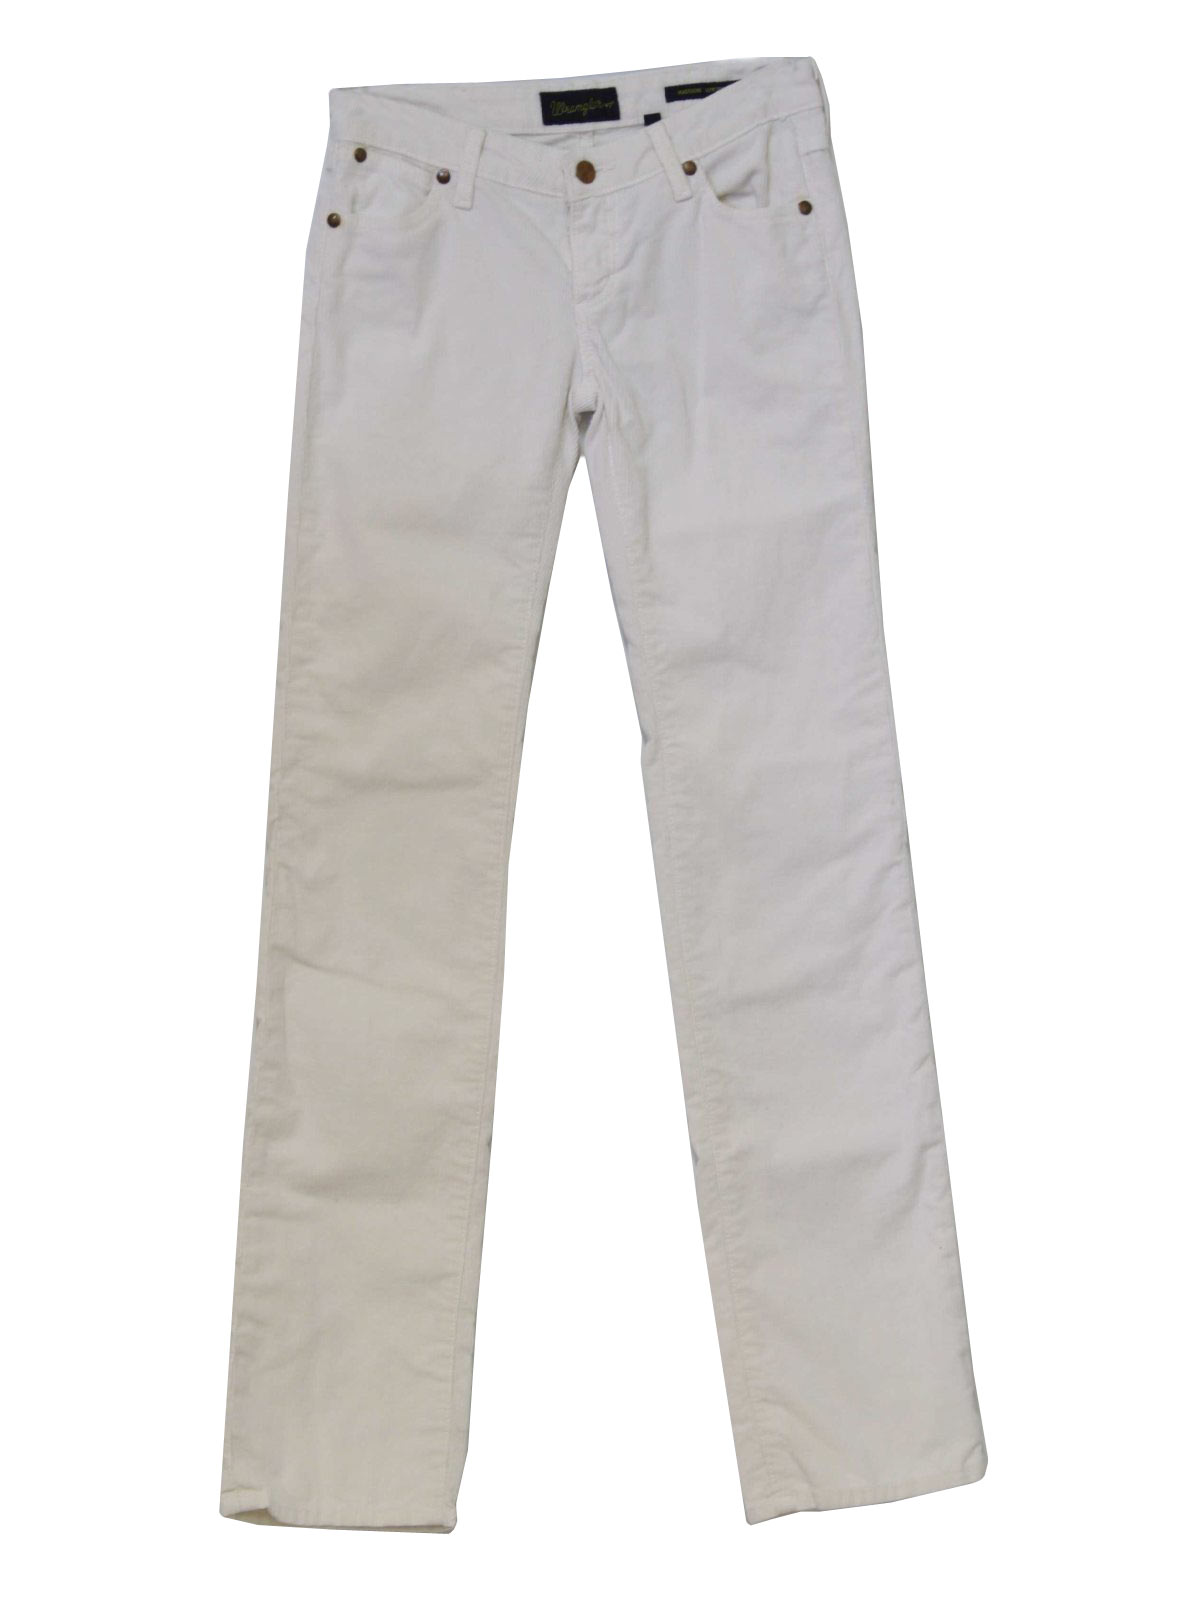 Mens Flared Jeans